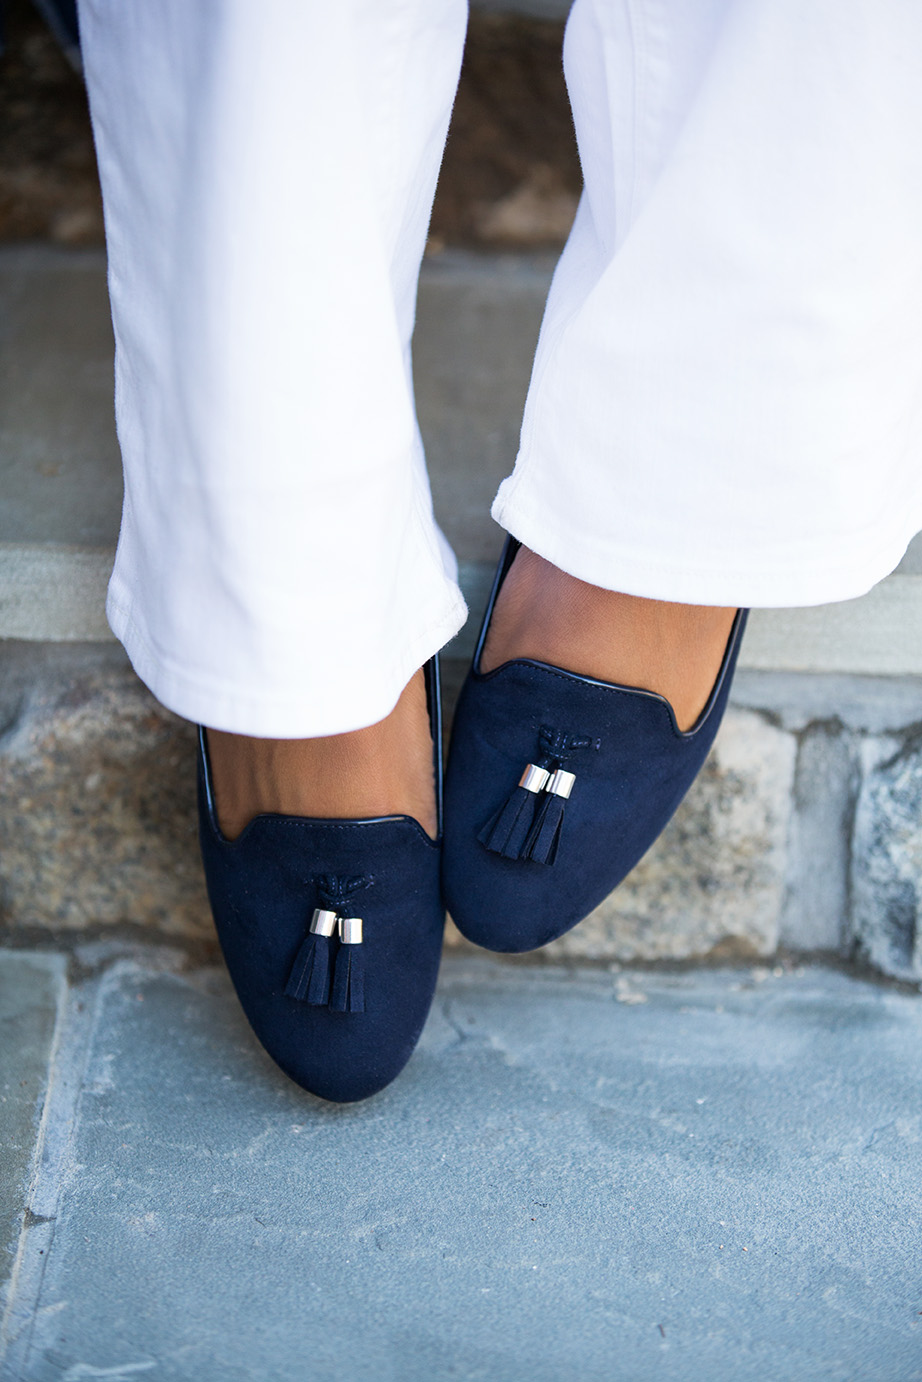 Payless tassel loafers, www.jadore-fashion.com